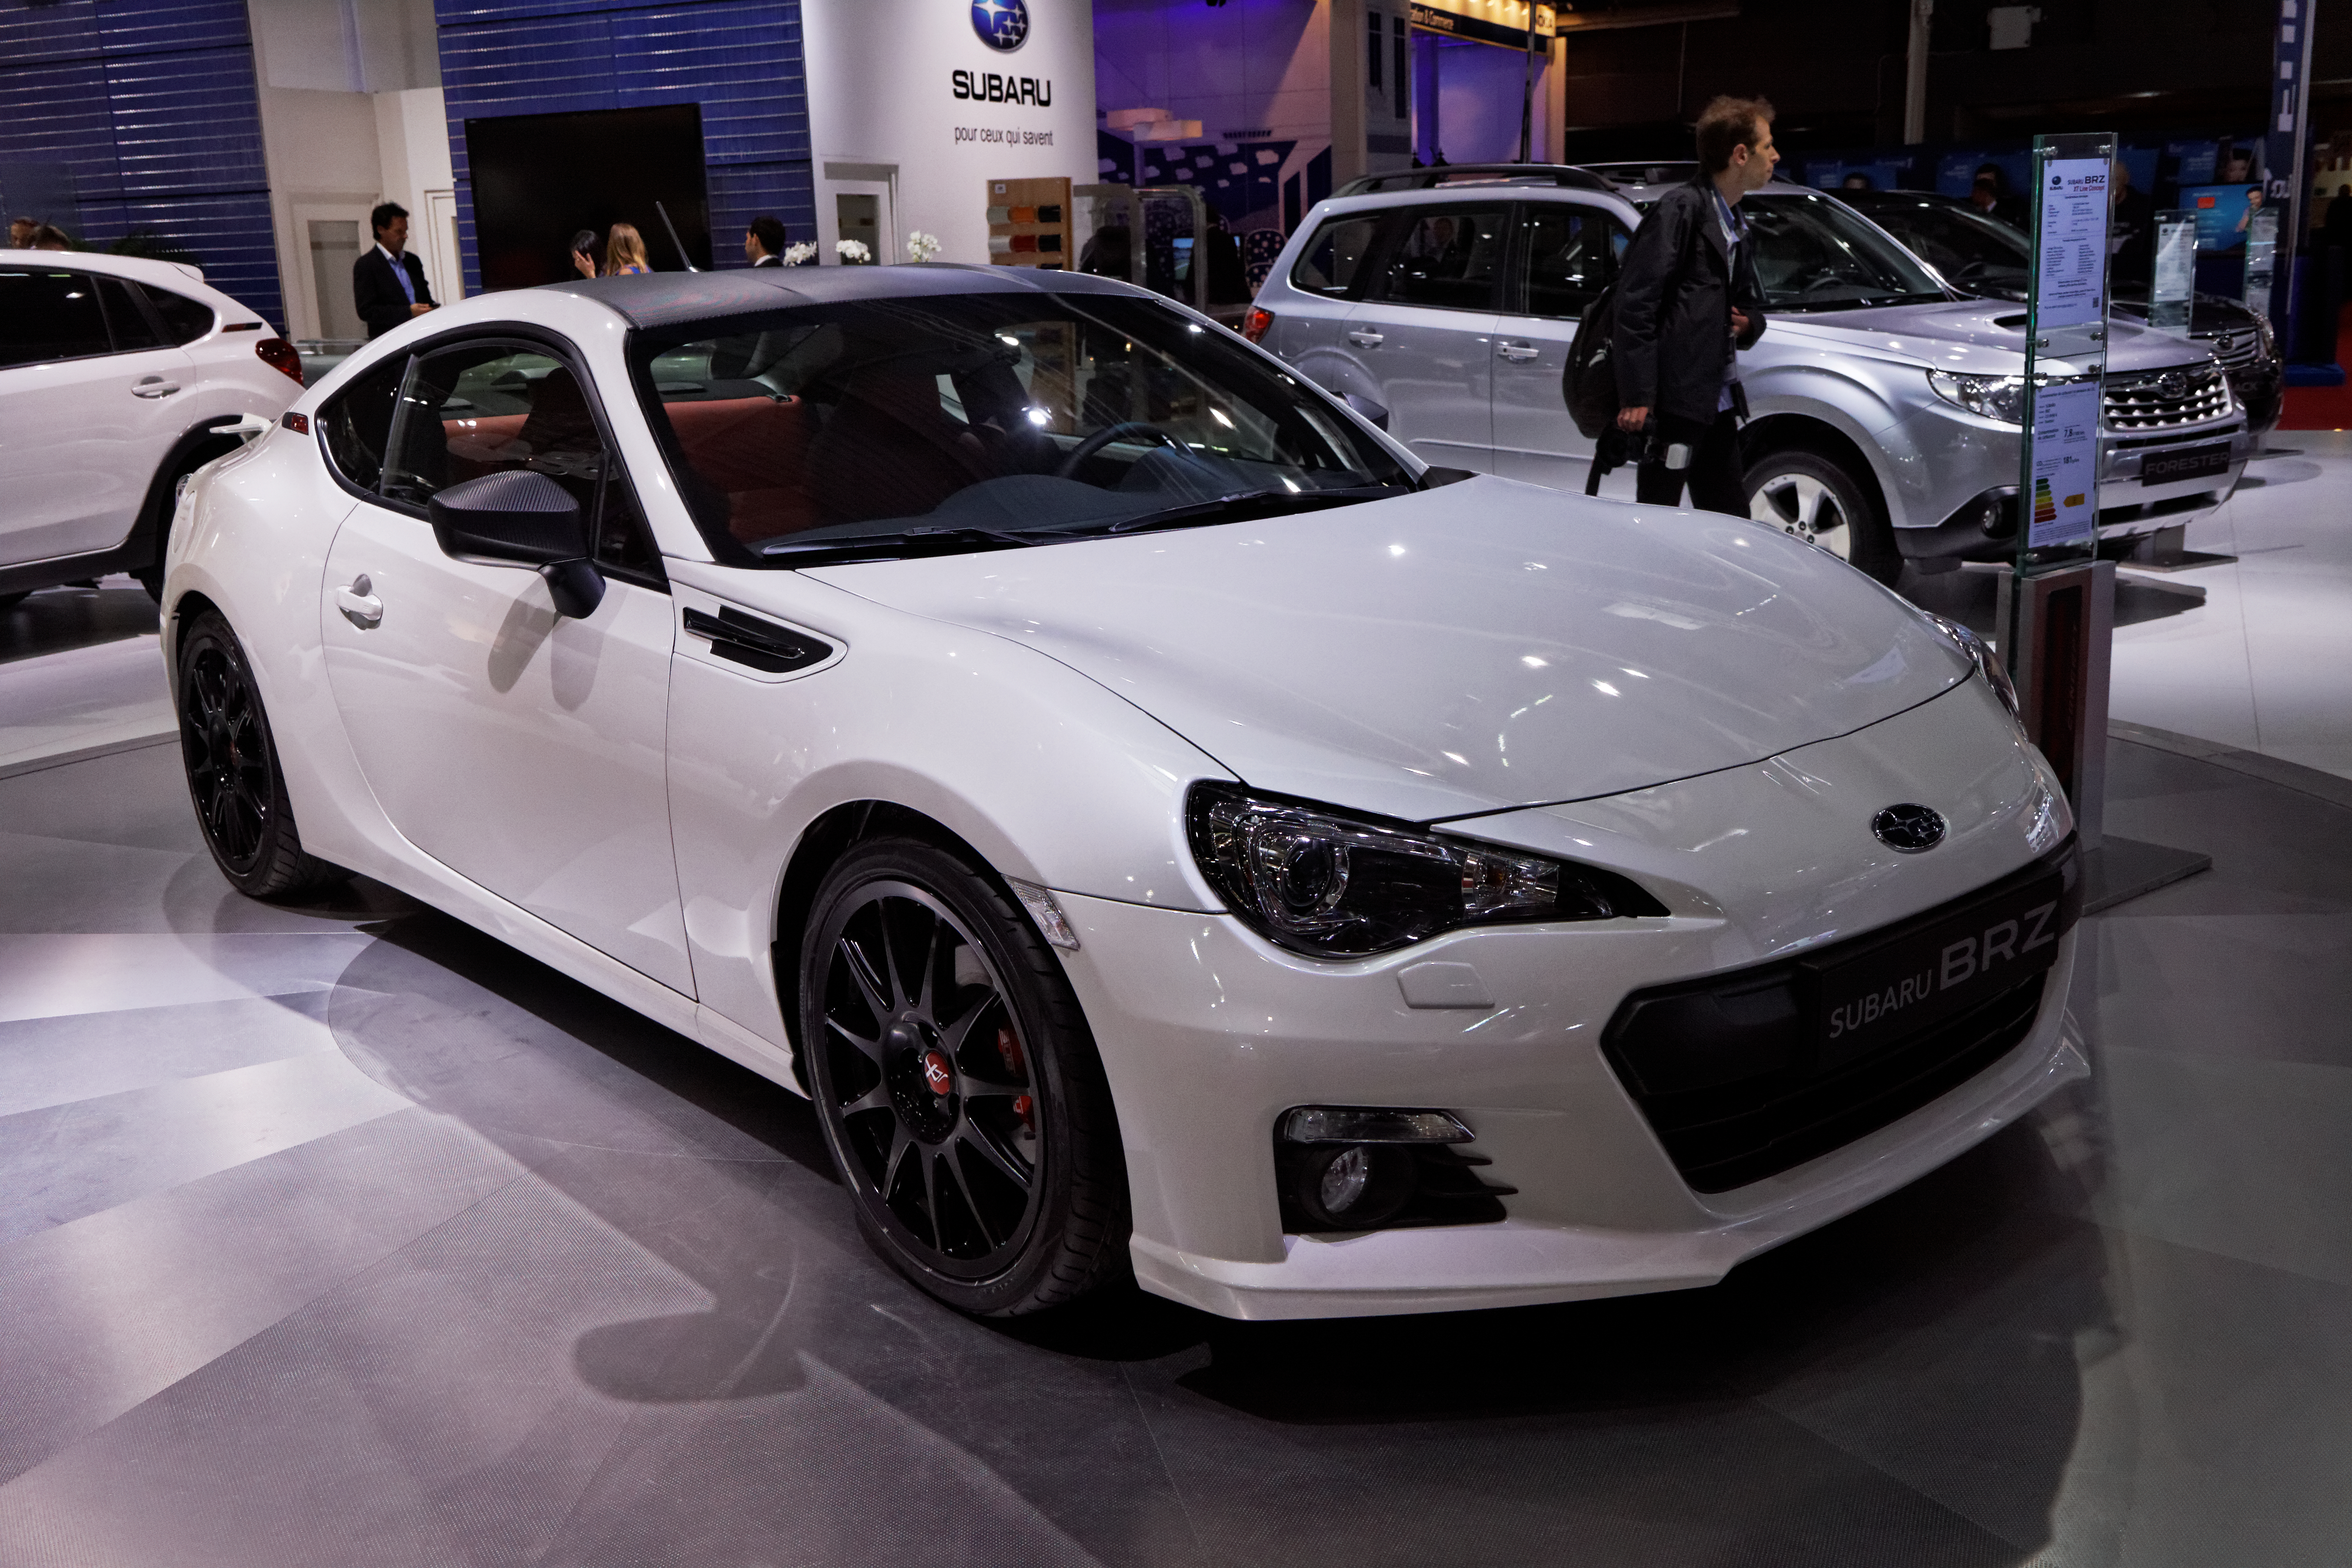 file subaru brz mondial de l 39 automobile de paris 2012 wikimedia commons. Black Bedroom Furniture Sets. Home Design Ideas